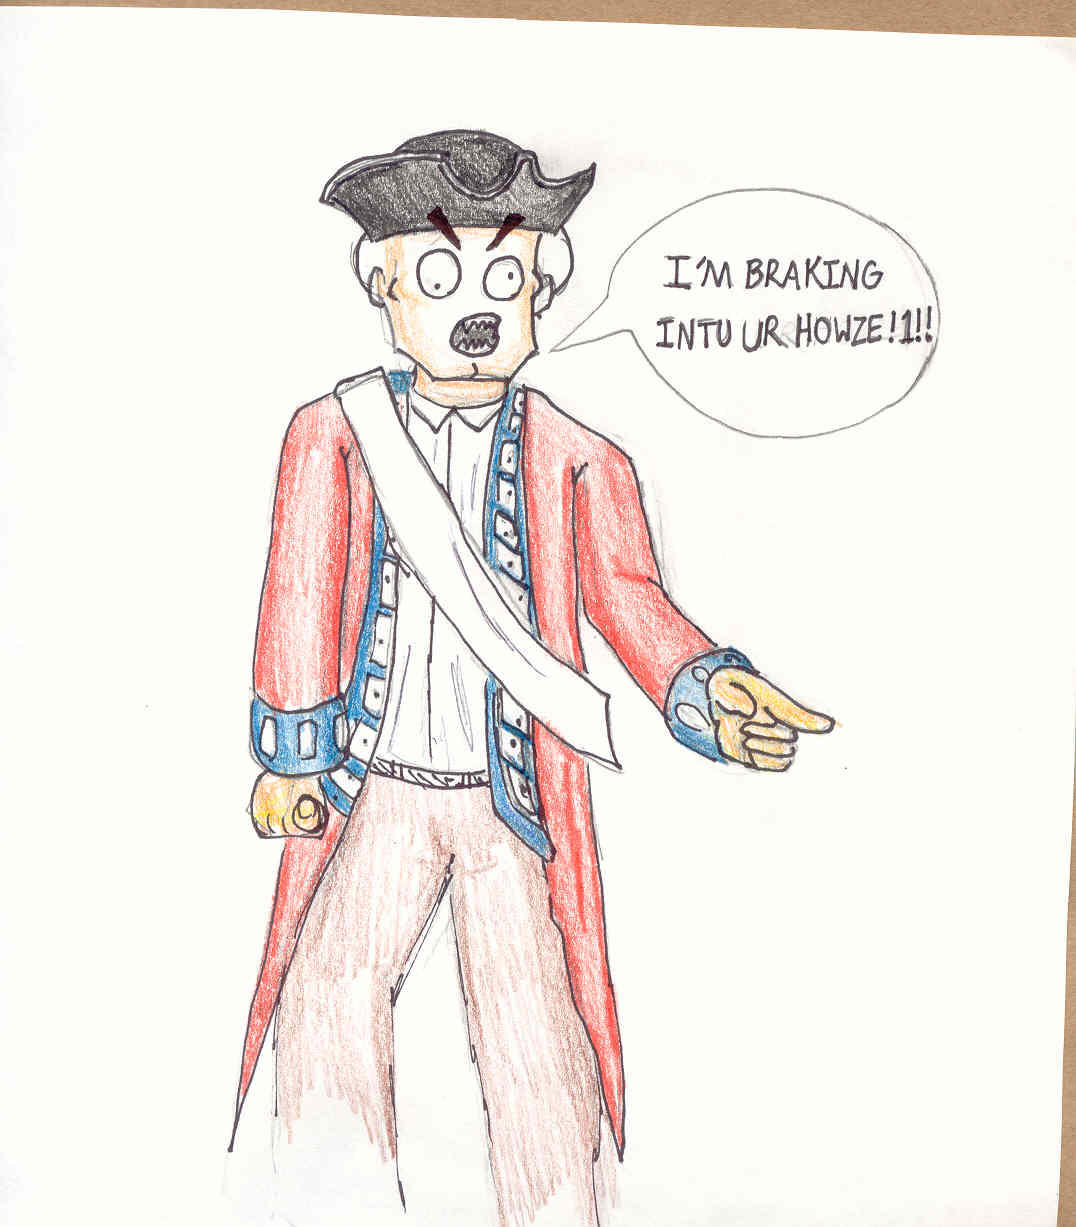 redcoat cartoon by Soulphat on DeviantArt